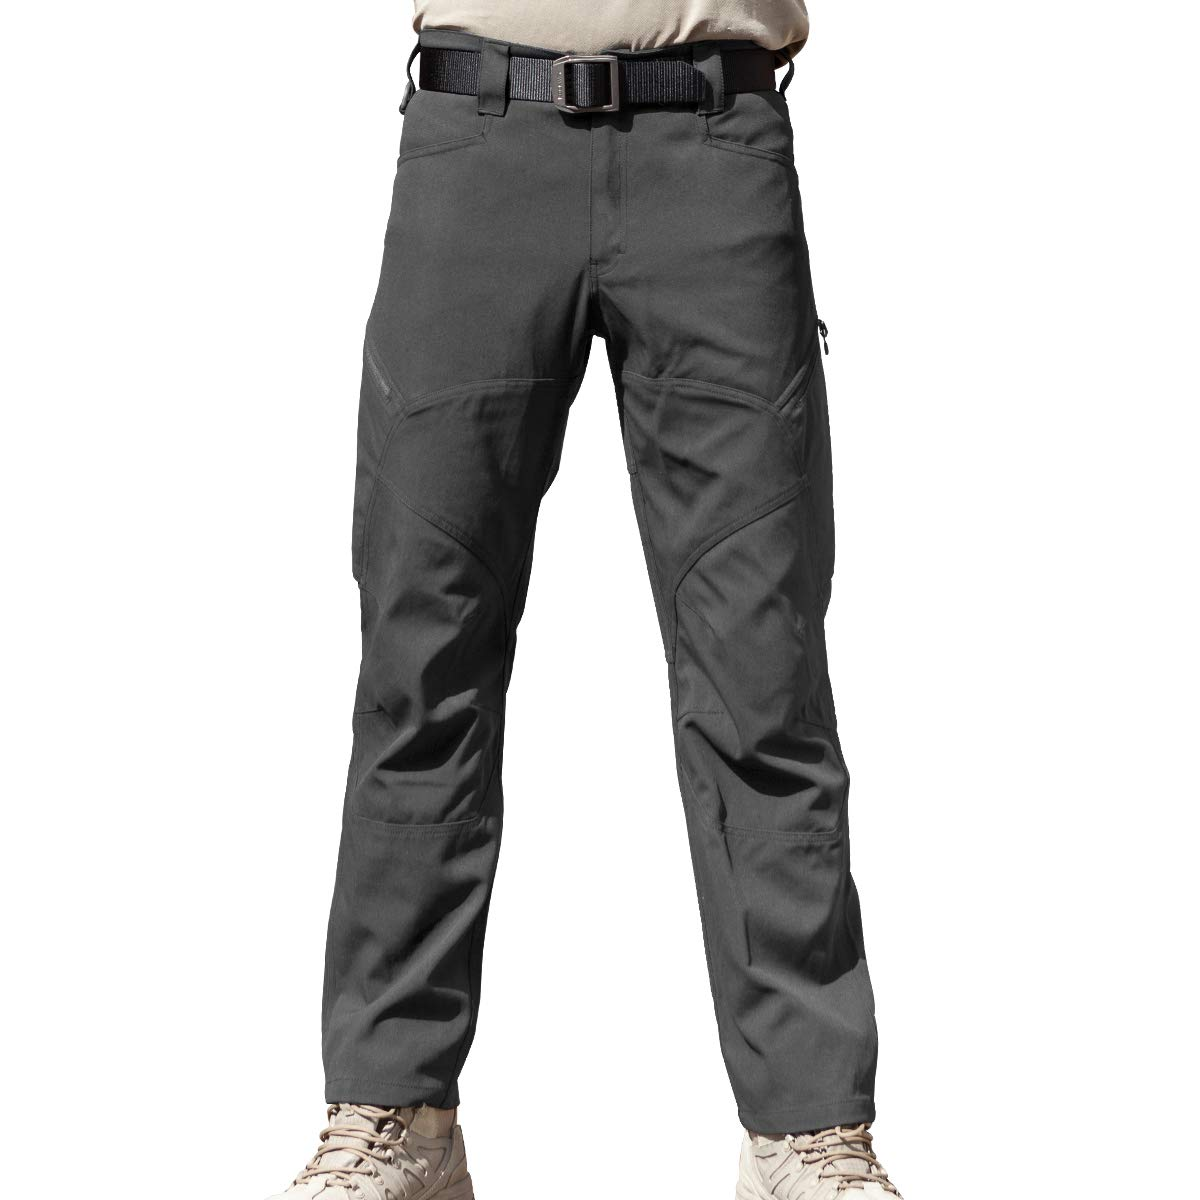 FREE SOLDIER Men's Tactical Pants front feature